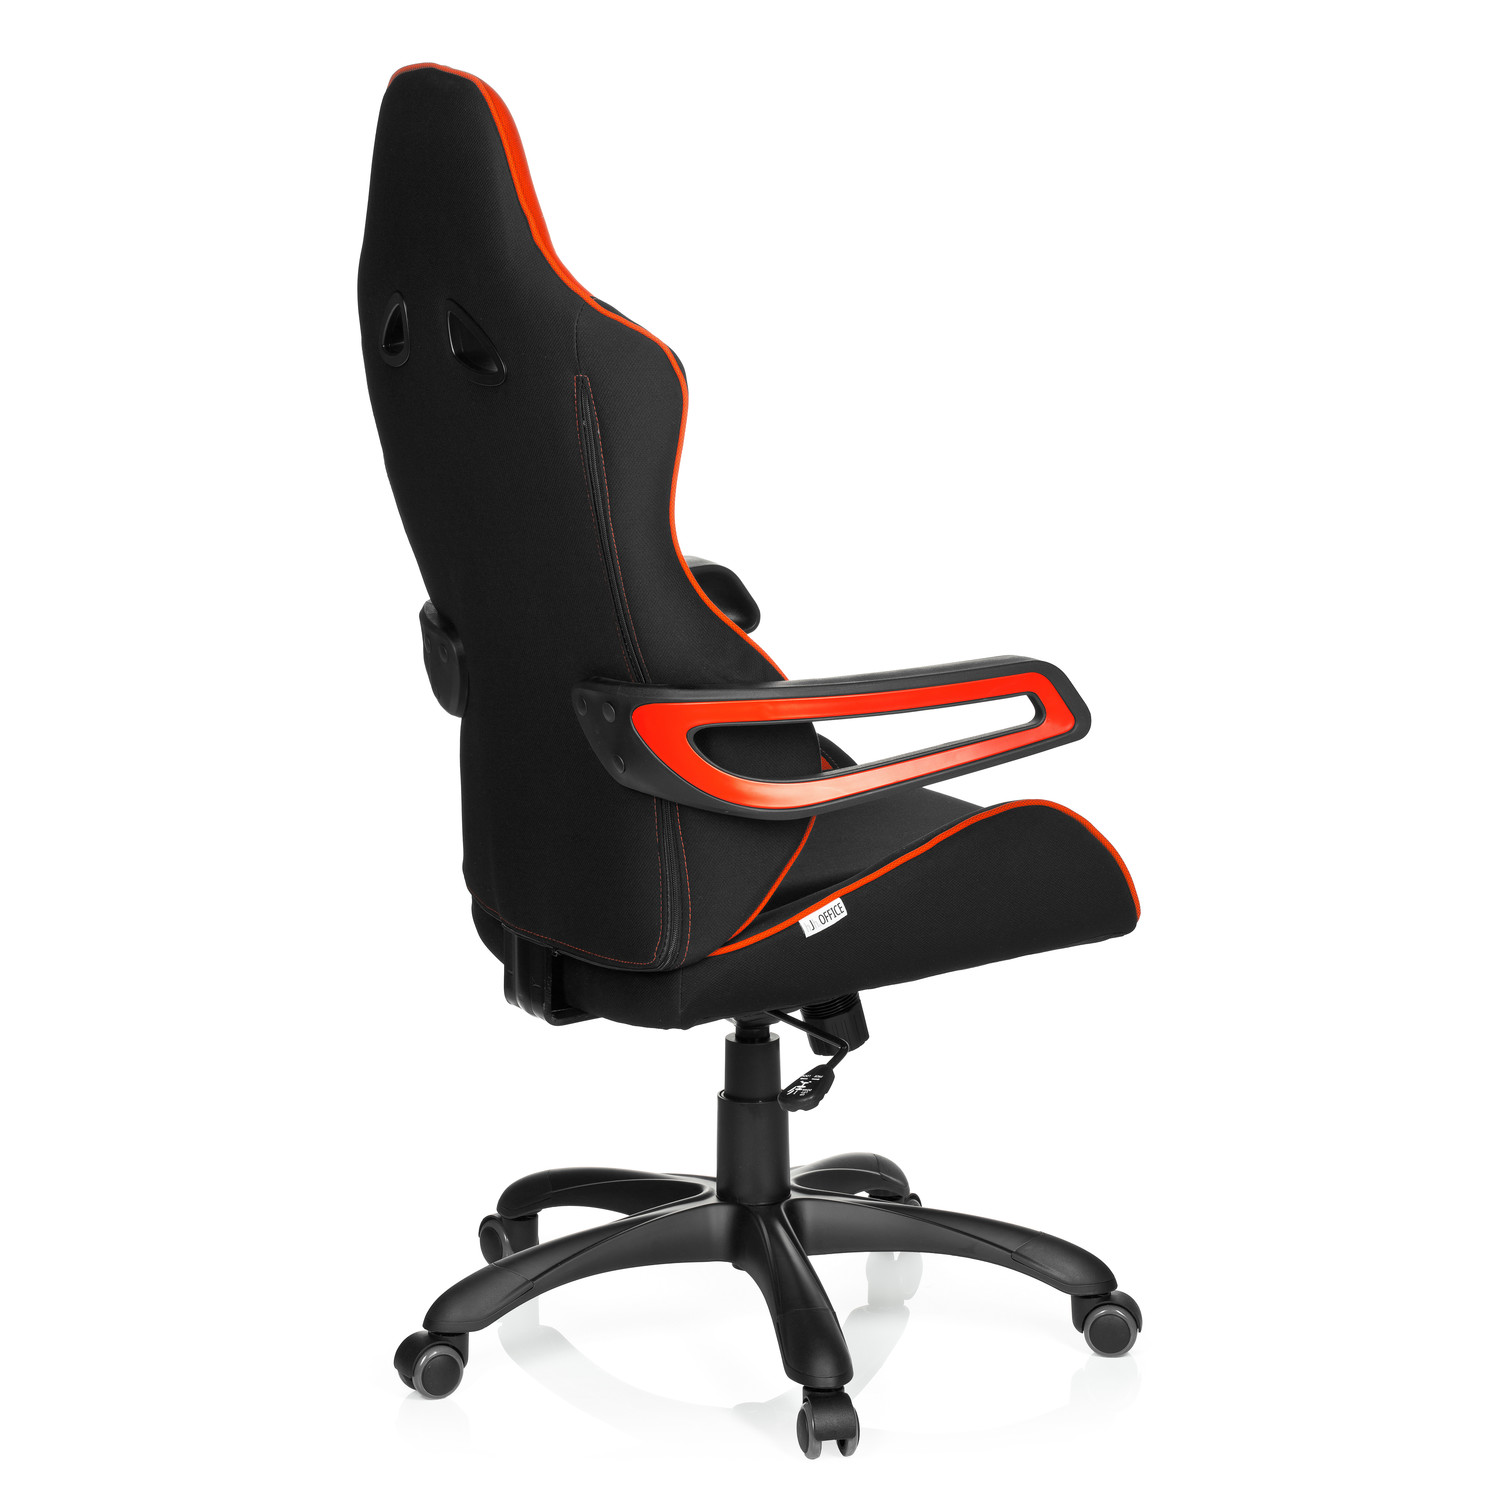 Silla gaming racer pro ii uso 8h color rojo negro silla for Silla ordenador gaming